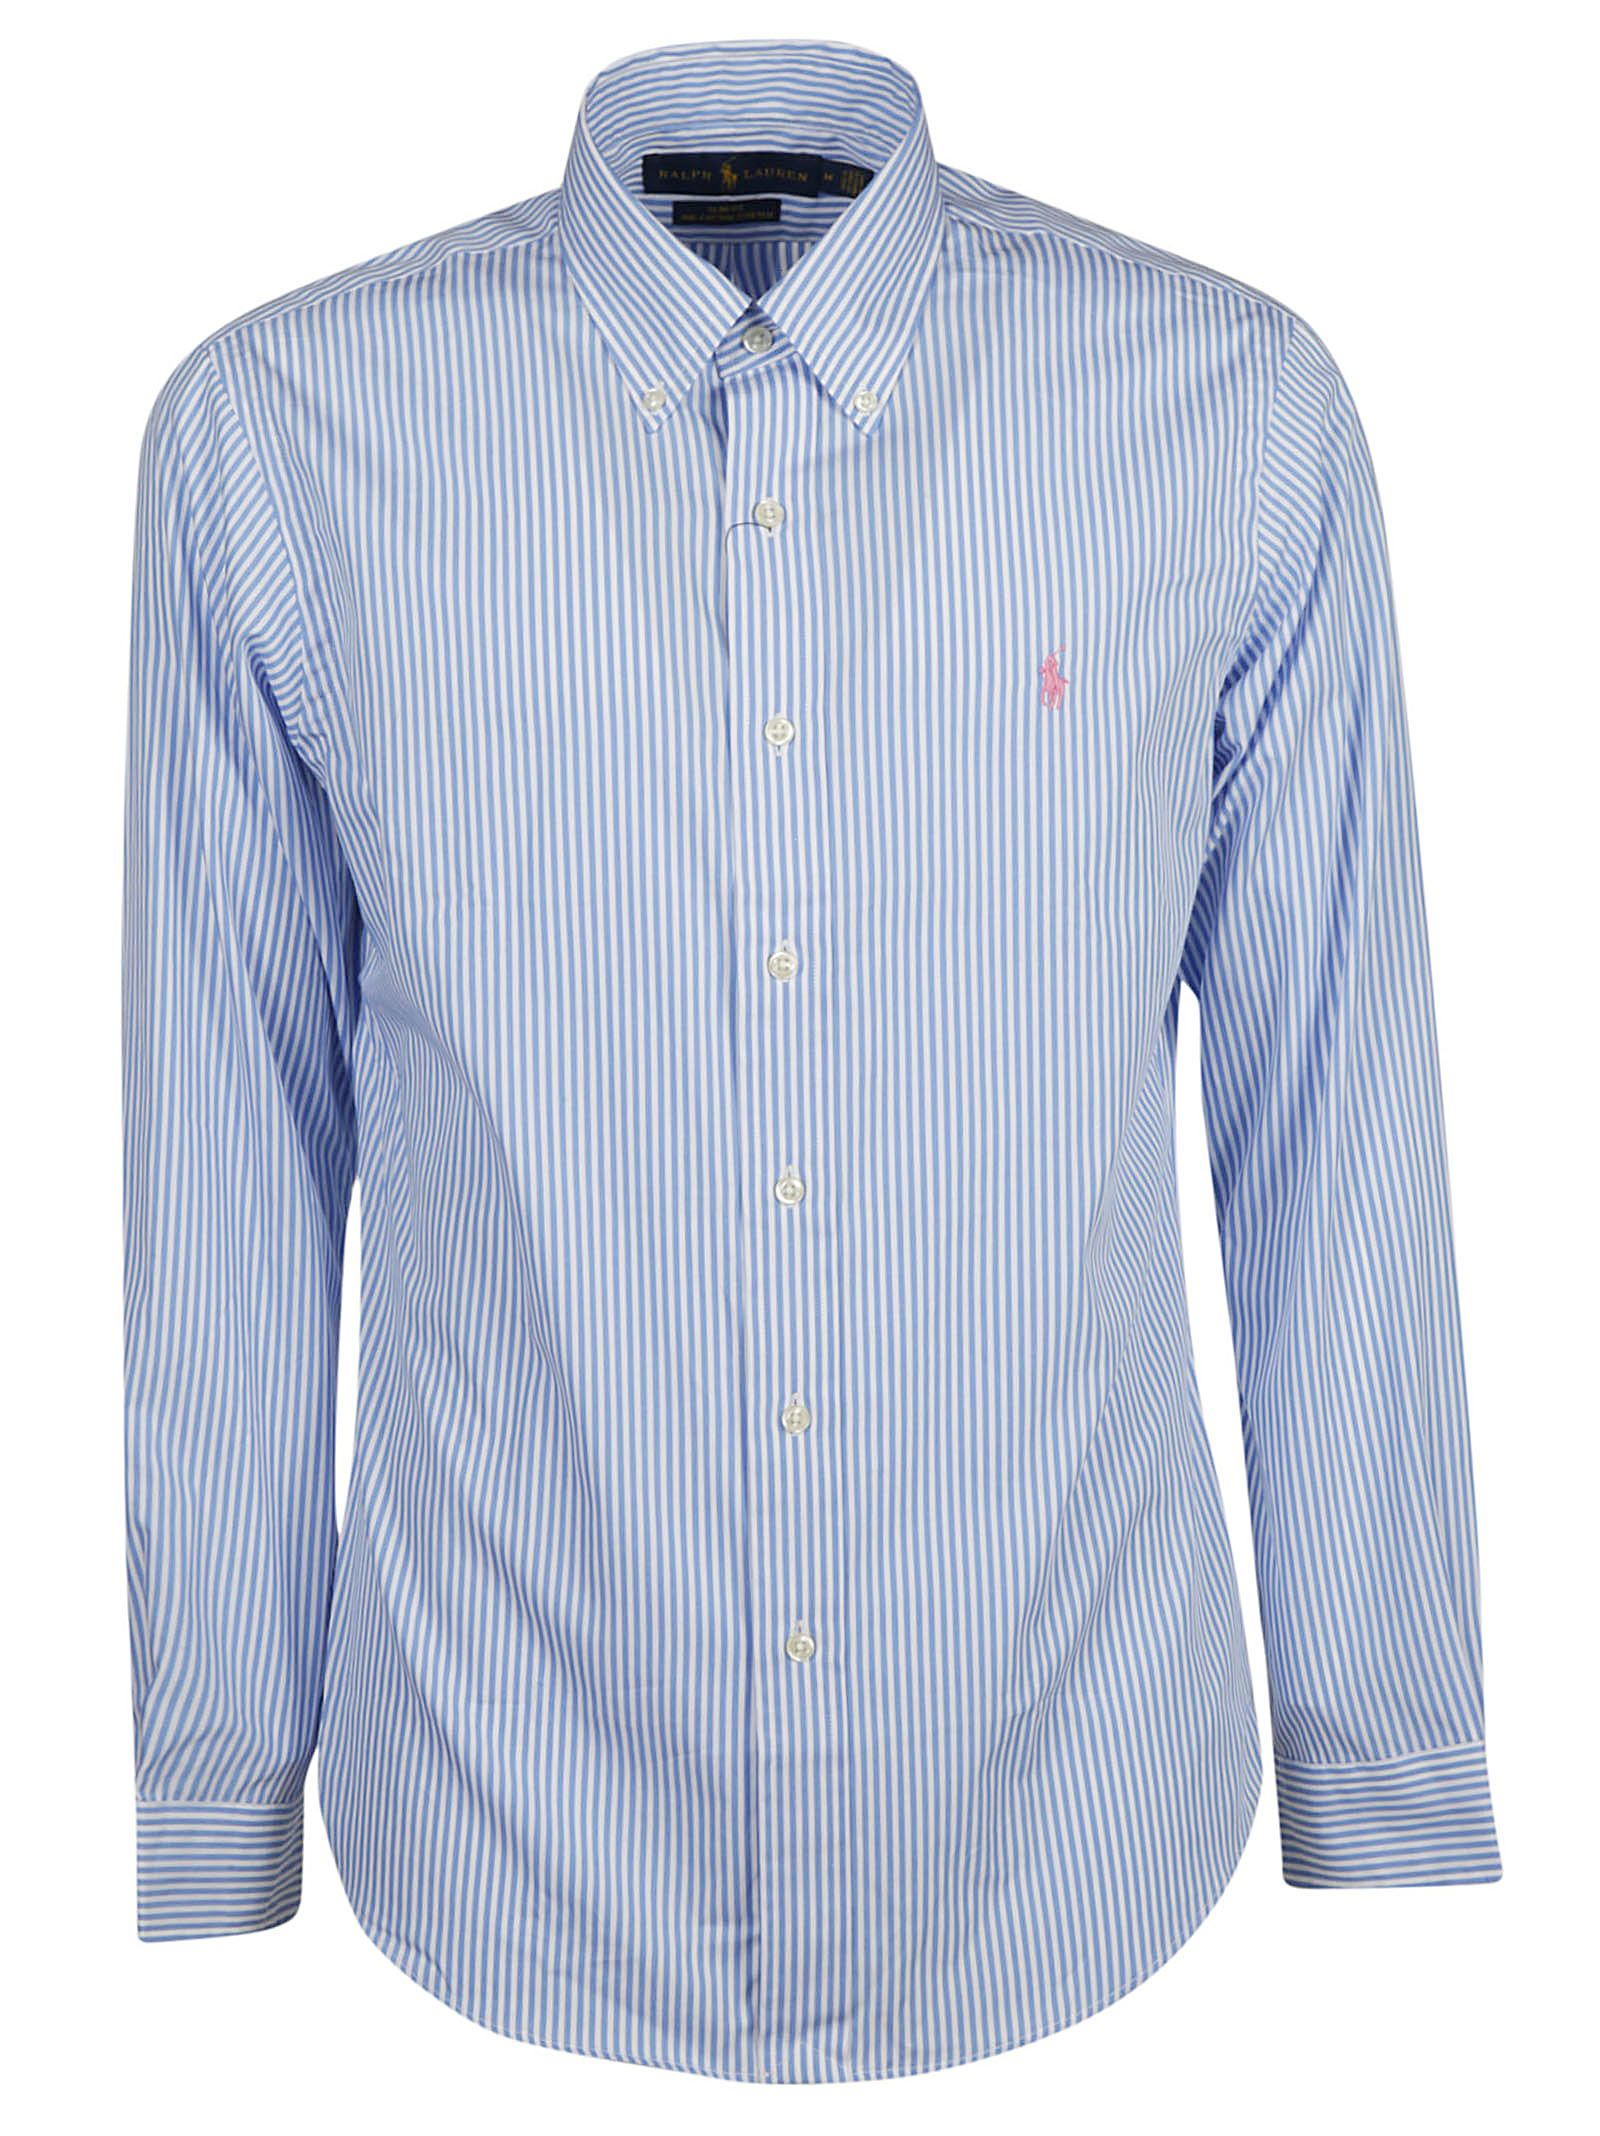 44ade5792 ... polo ralph lauren cbf37 59d9c; where to buy ralph lauren striped shirt  blue white 571ed a5f6b